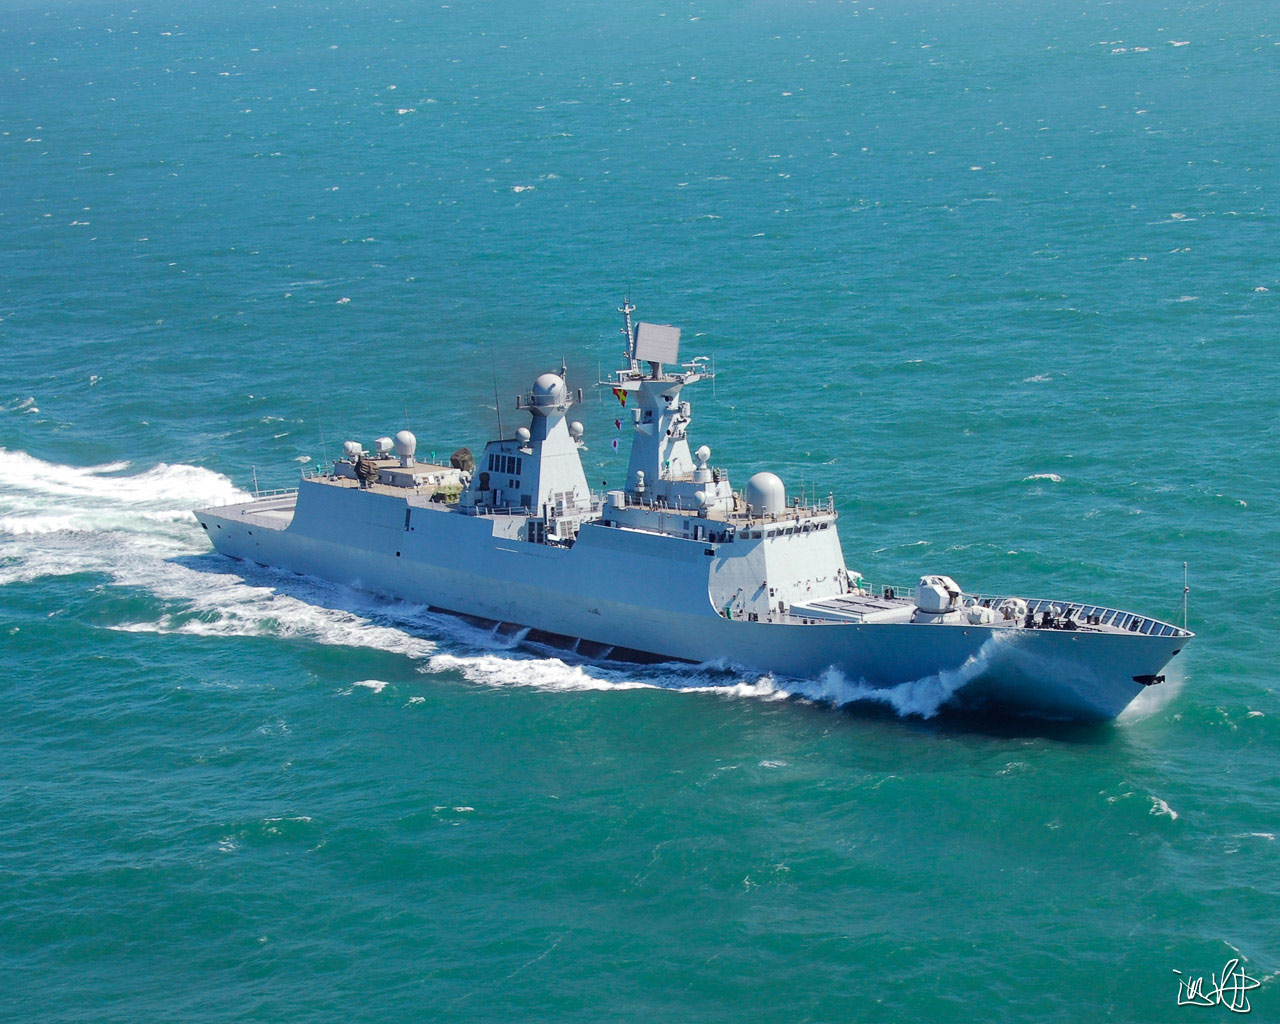 China Navy Ships Military http://www.informationdissemination.net/2011/02/asia-sending-ships-to-libya.html